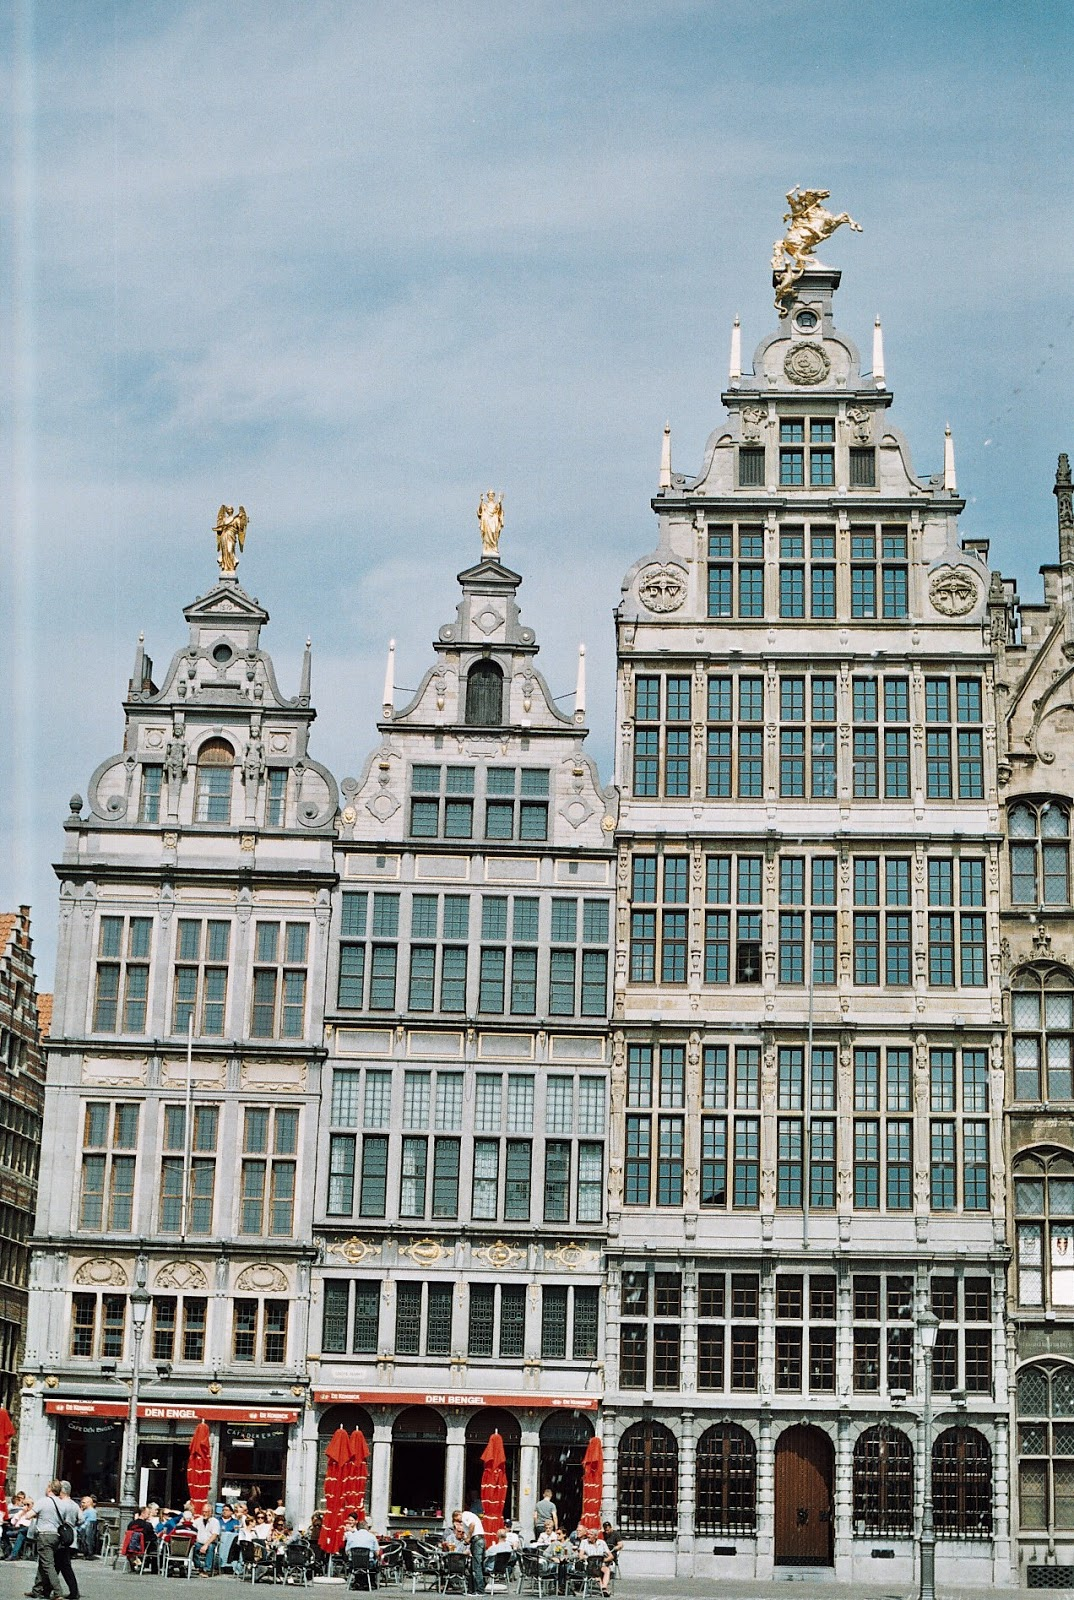 Antwerp Film Travel Guide - What To See? | oandrajos.blogspot.co.uk